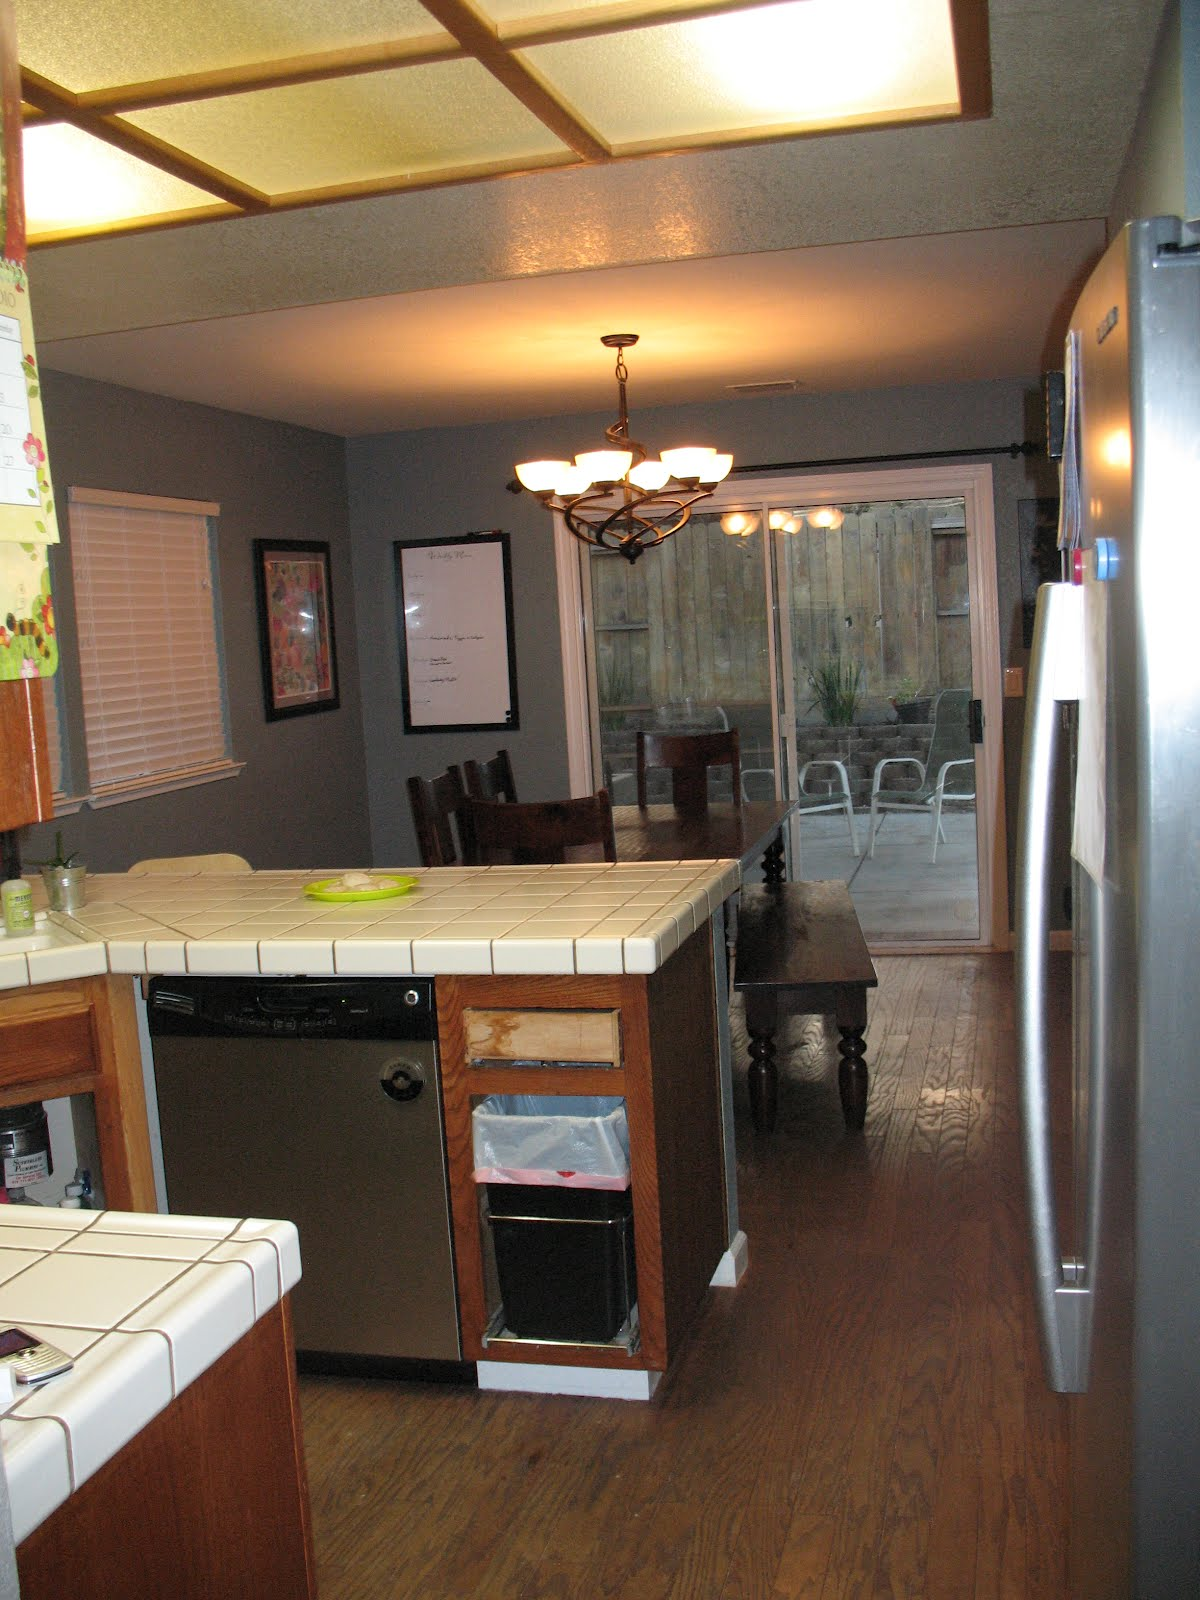 Diy Kitchen Crashers Contest Meaningful Home Life Kitchen Makeover House Crasher Style